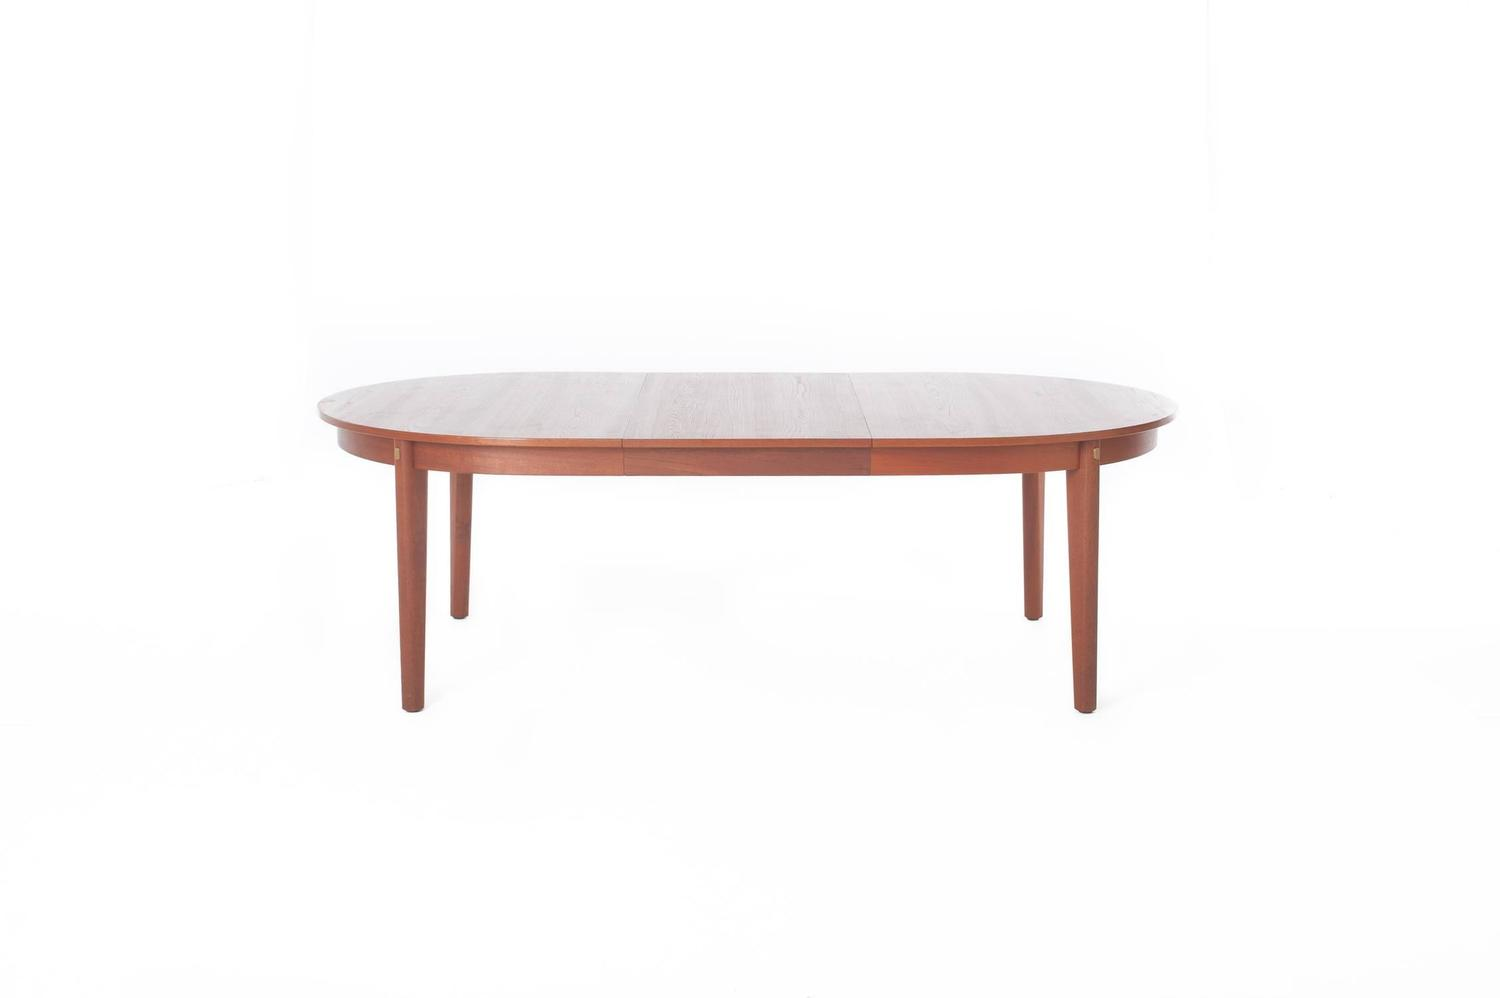 Danish modern dining table for sale at 1stdibs for 12 person dining table for sale